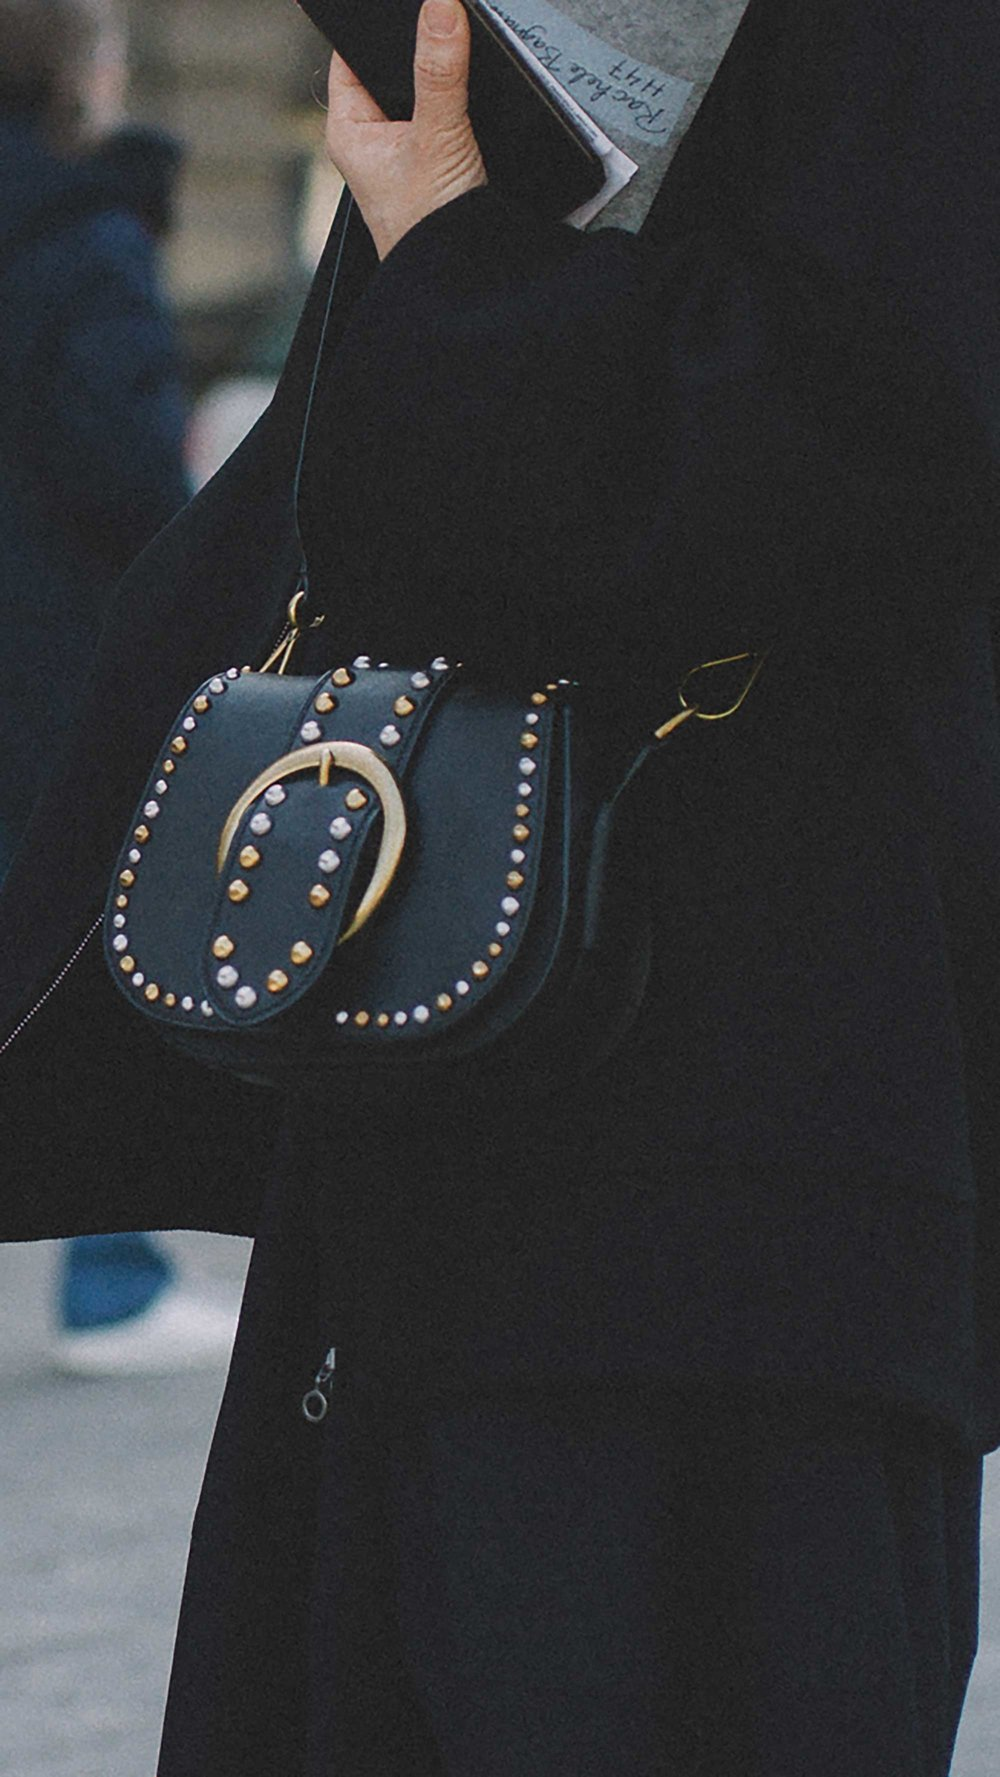 est outfits of Milan Fashion Week street style day two MFW FW19 47.jpg